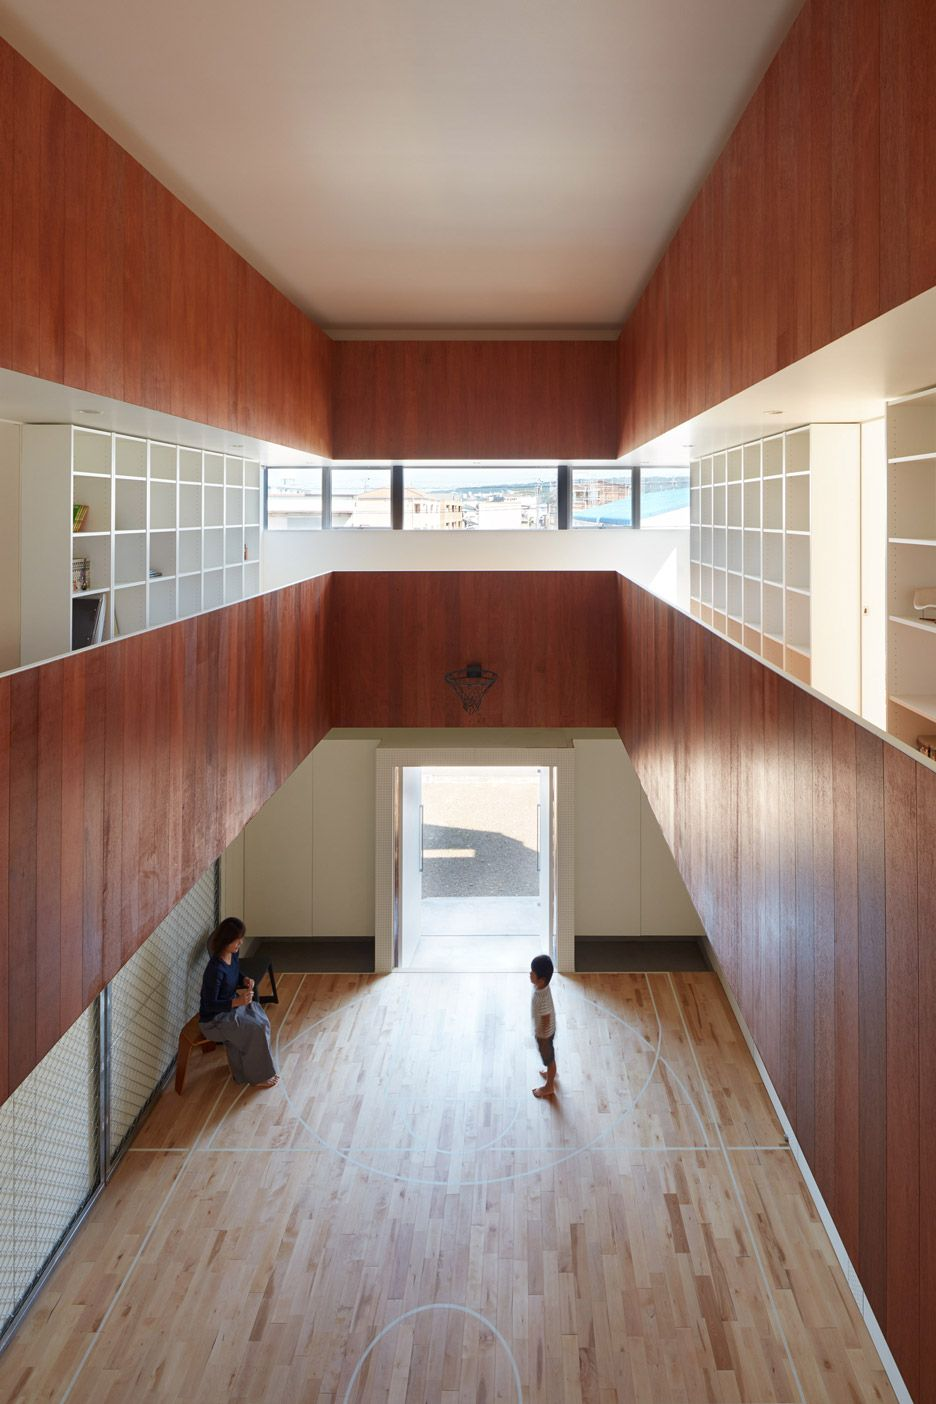 An Indoor Basketball Court Forms The Atrium Of This Family Home In Eastern Japan Home Basketball Court Indoor Basketball Court House